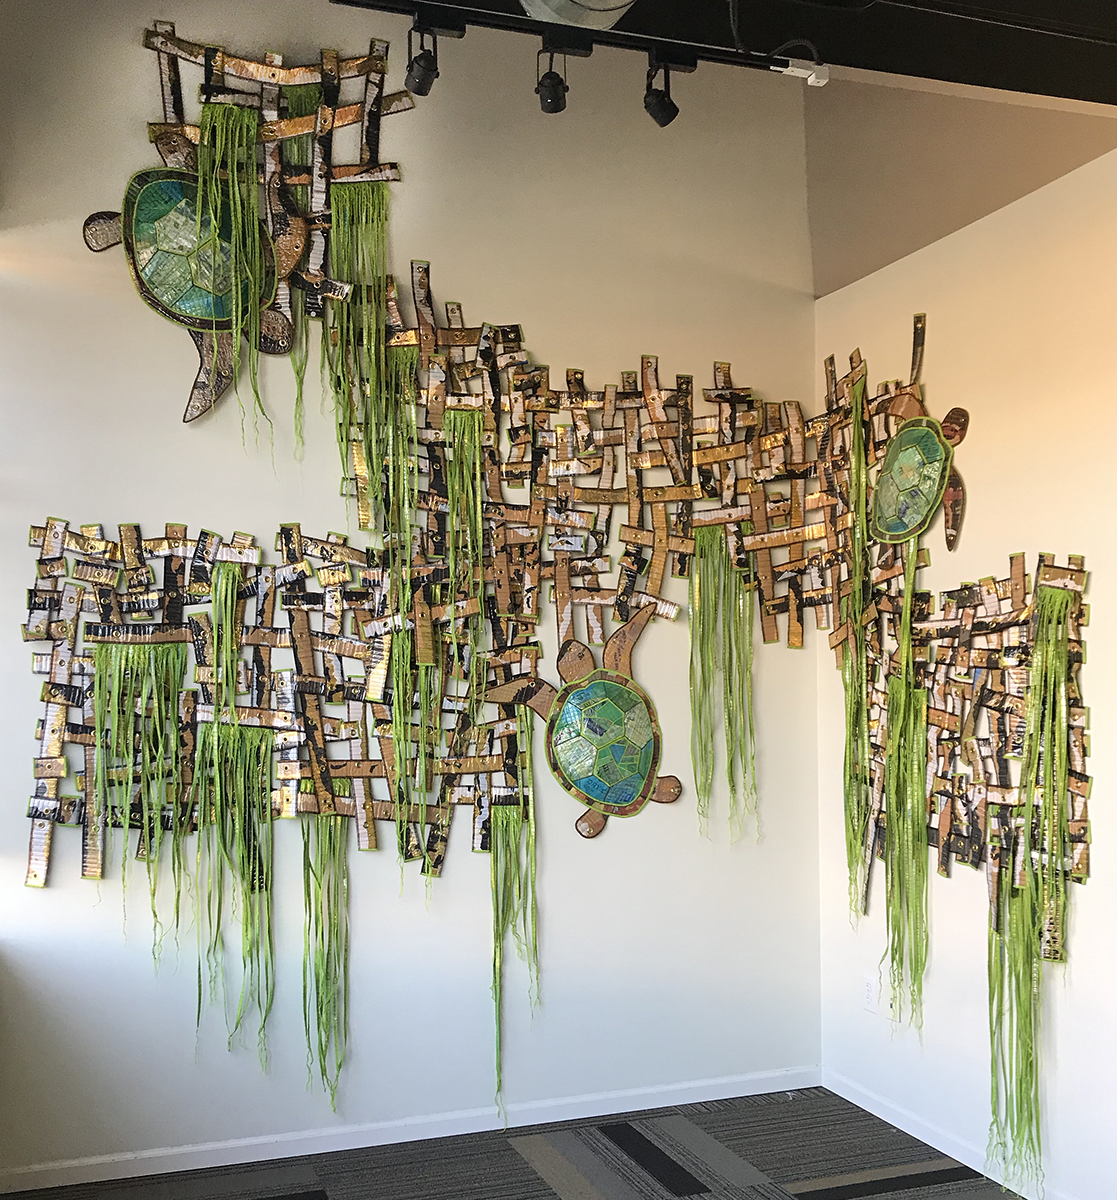 Erik Jon Olson - Navigating the Gallows 2019 approximately 150 square feet (Maple Grove Art Center installation)